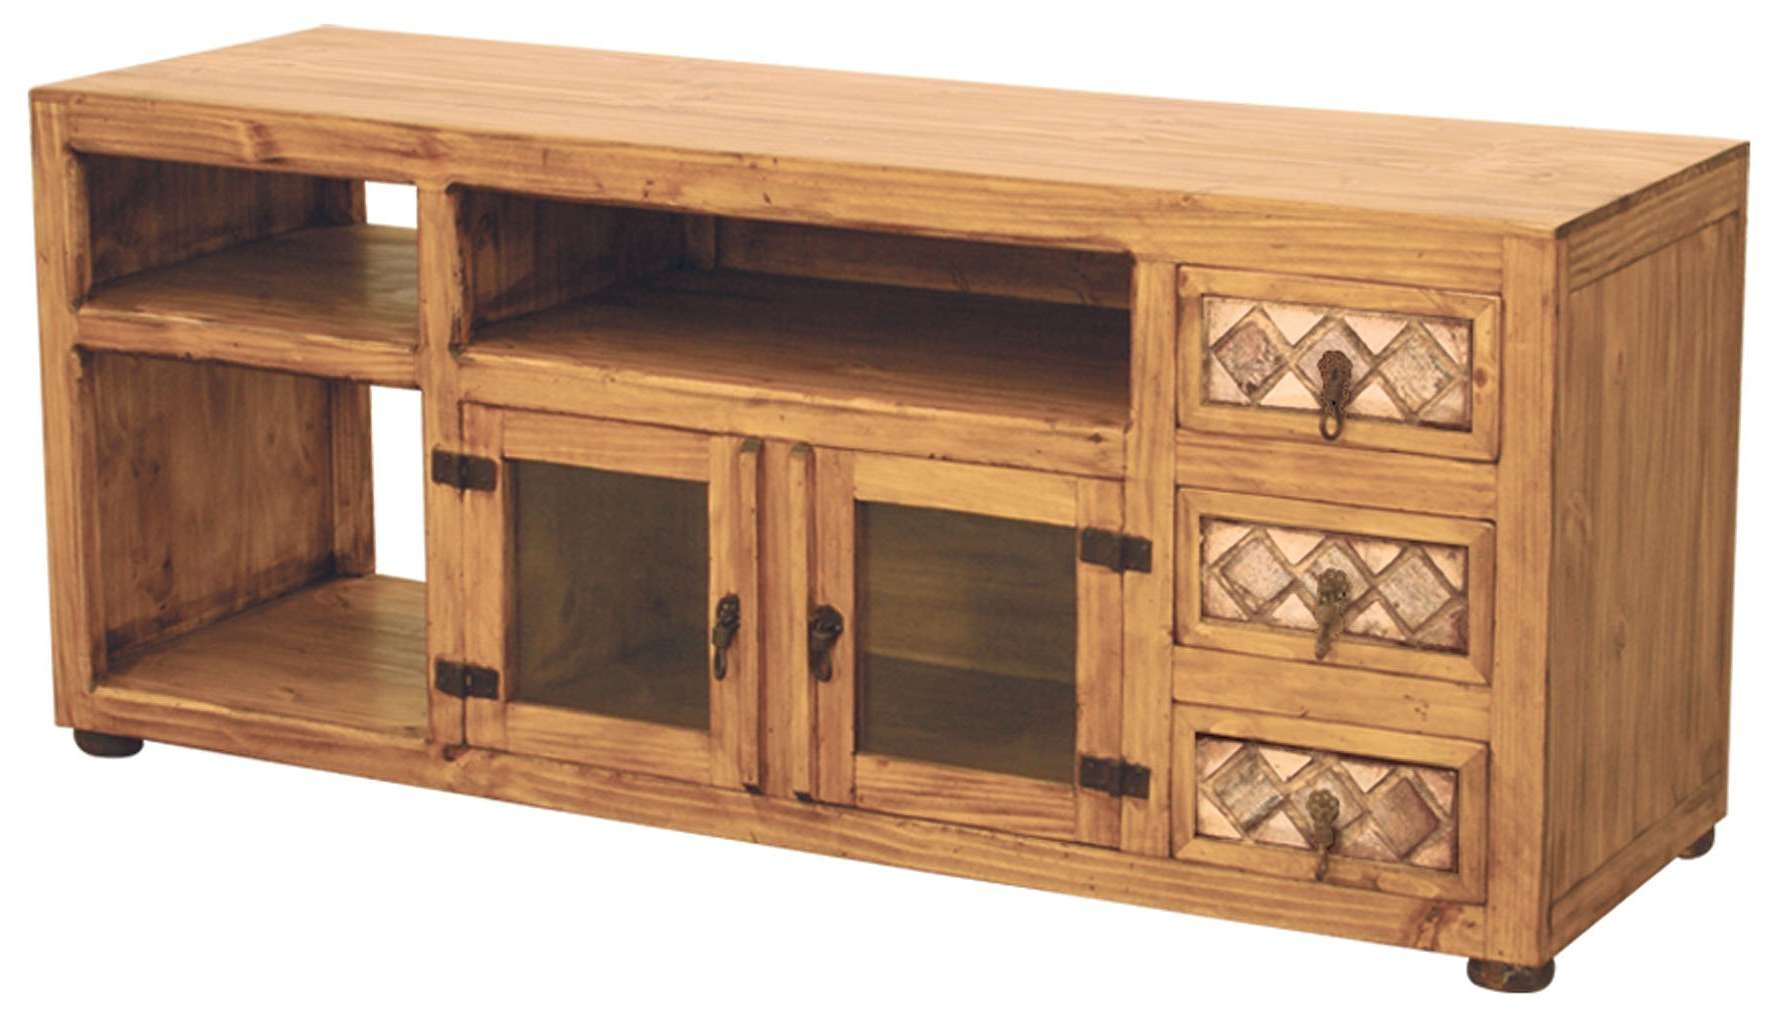 Pine Furniture Tv Stand Decor | Gyleshomes Within Pine Wood Tv Stands (View 9 of 15)